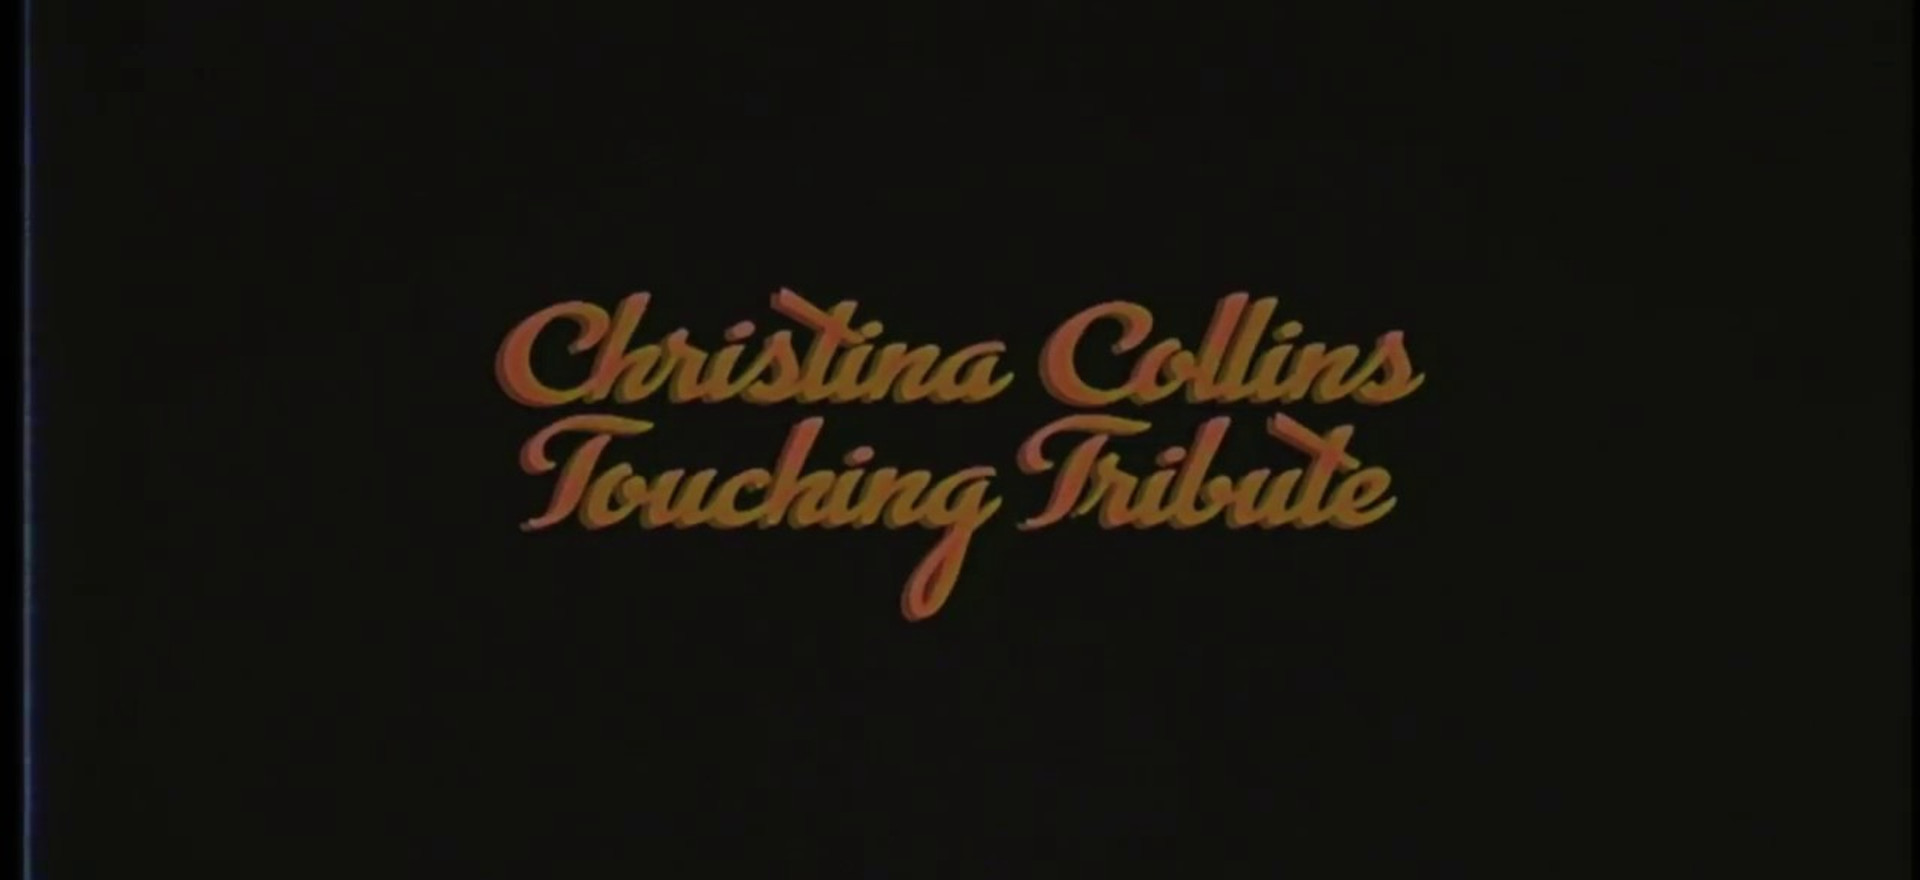 Christina Collins Touching Tribute VHS